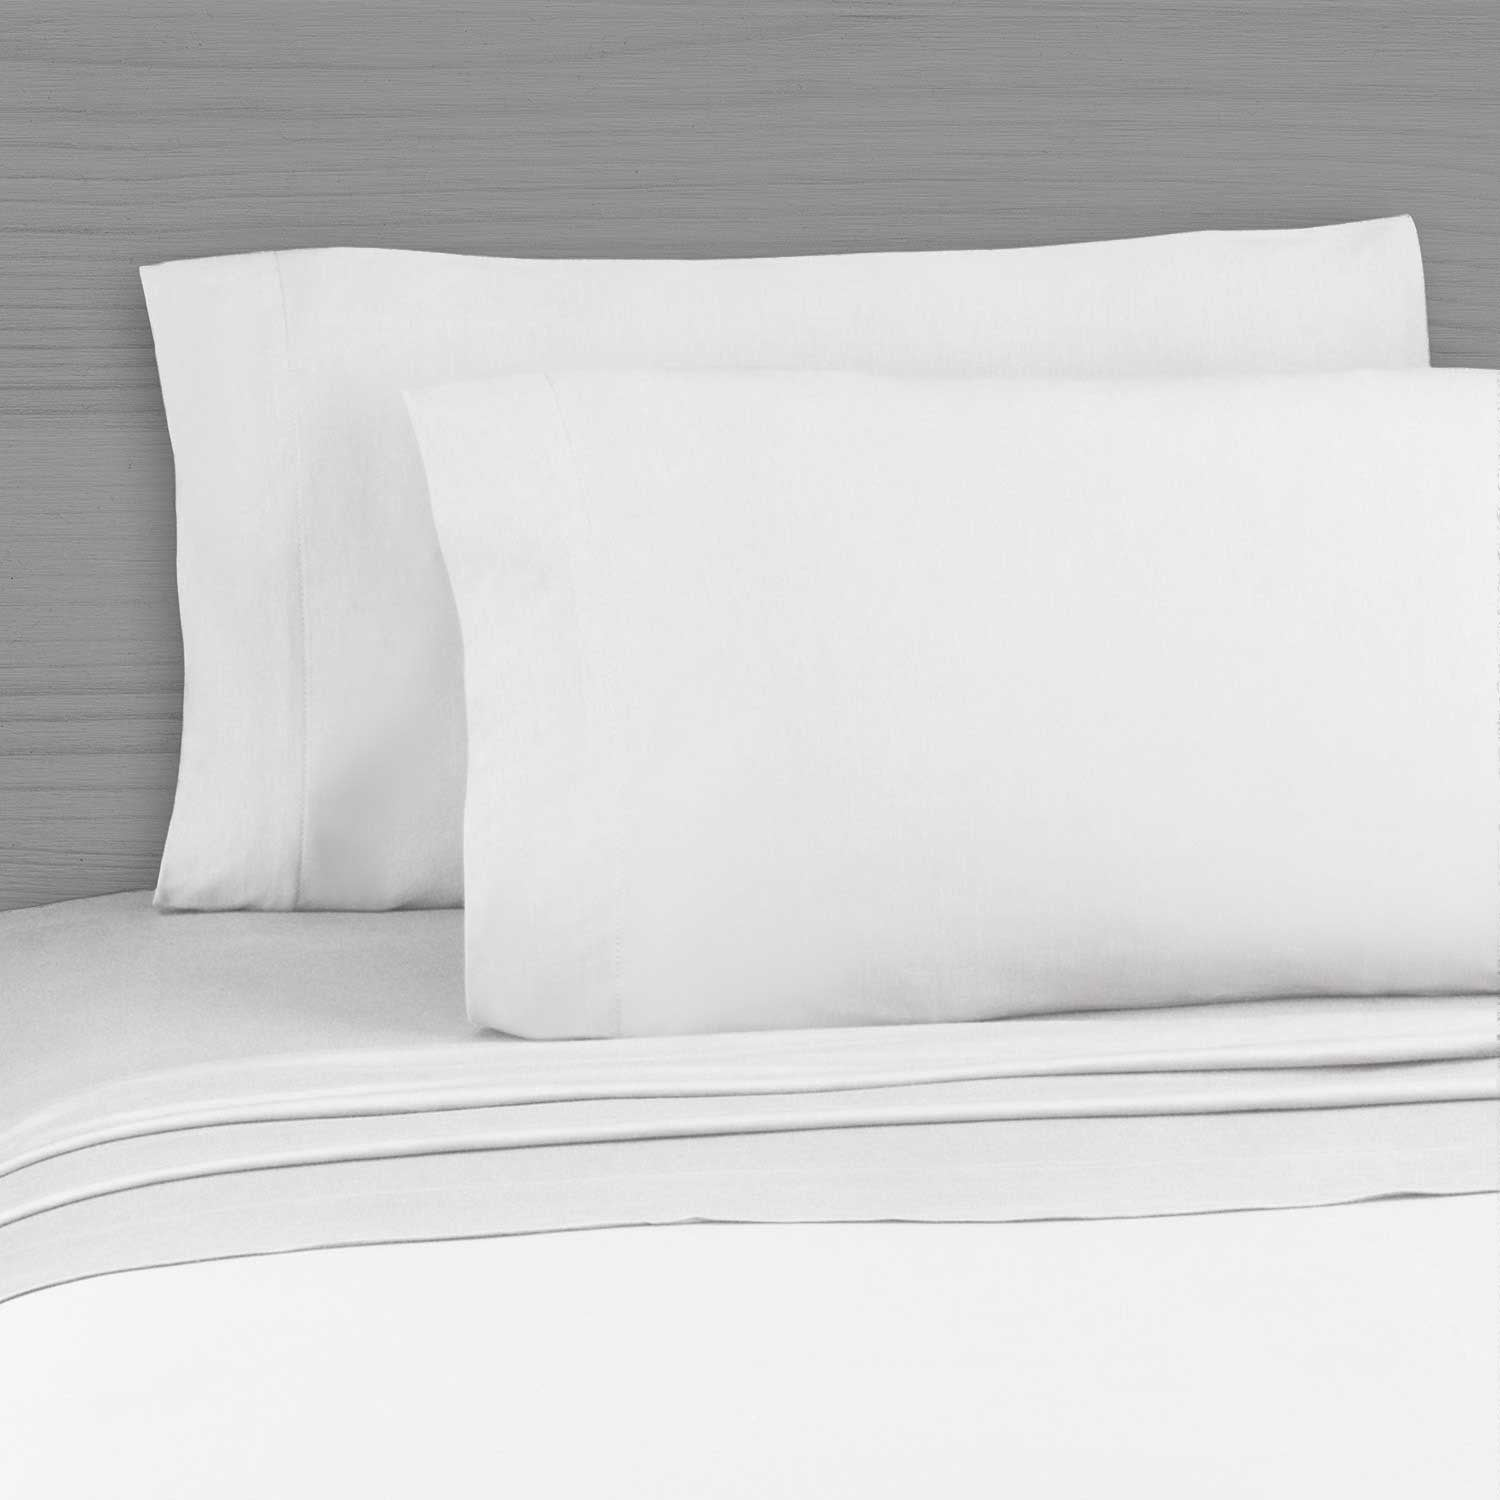 Perfect Sheet Set, 200 Thread Count, Cotton Blend - White Queen